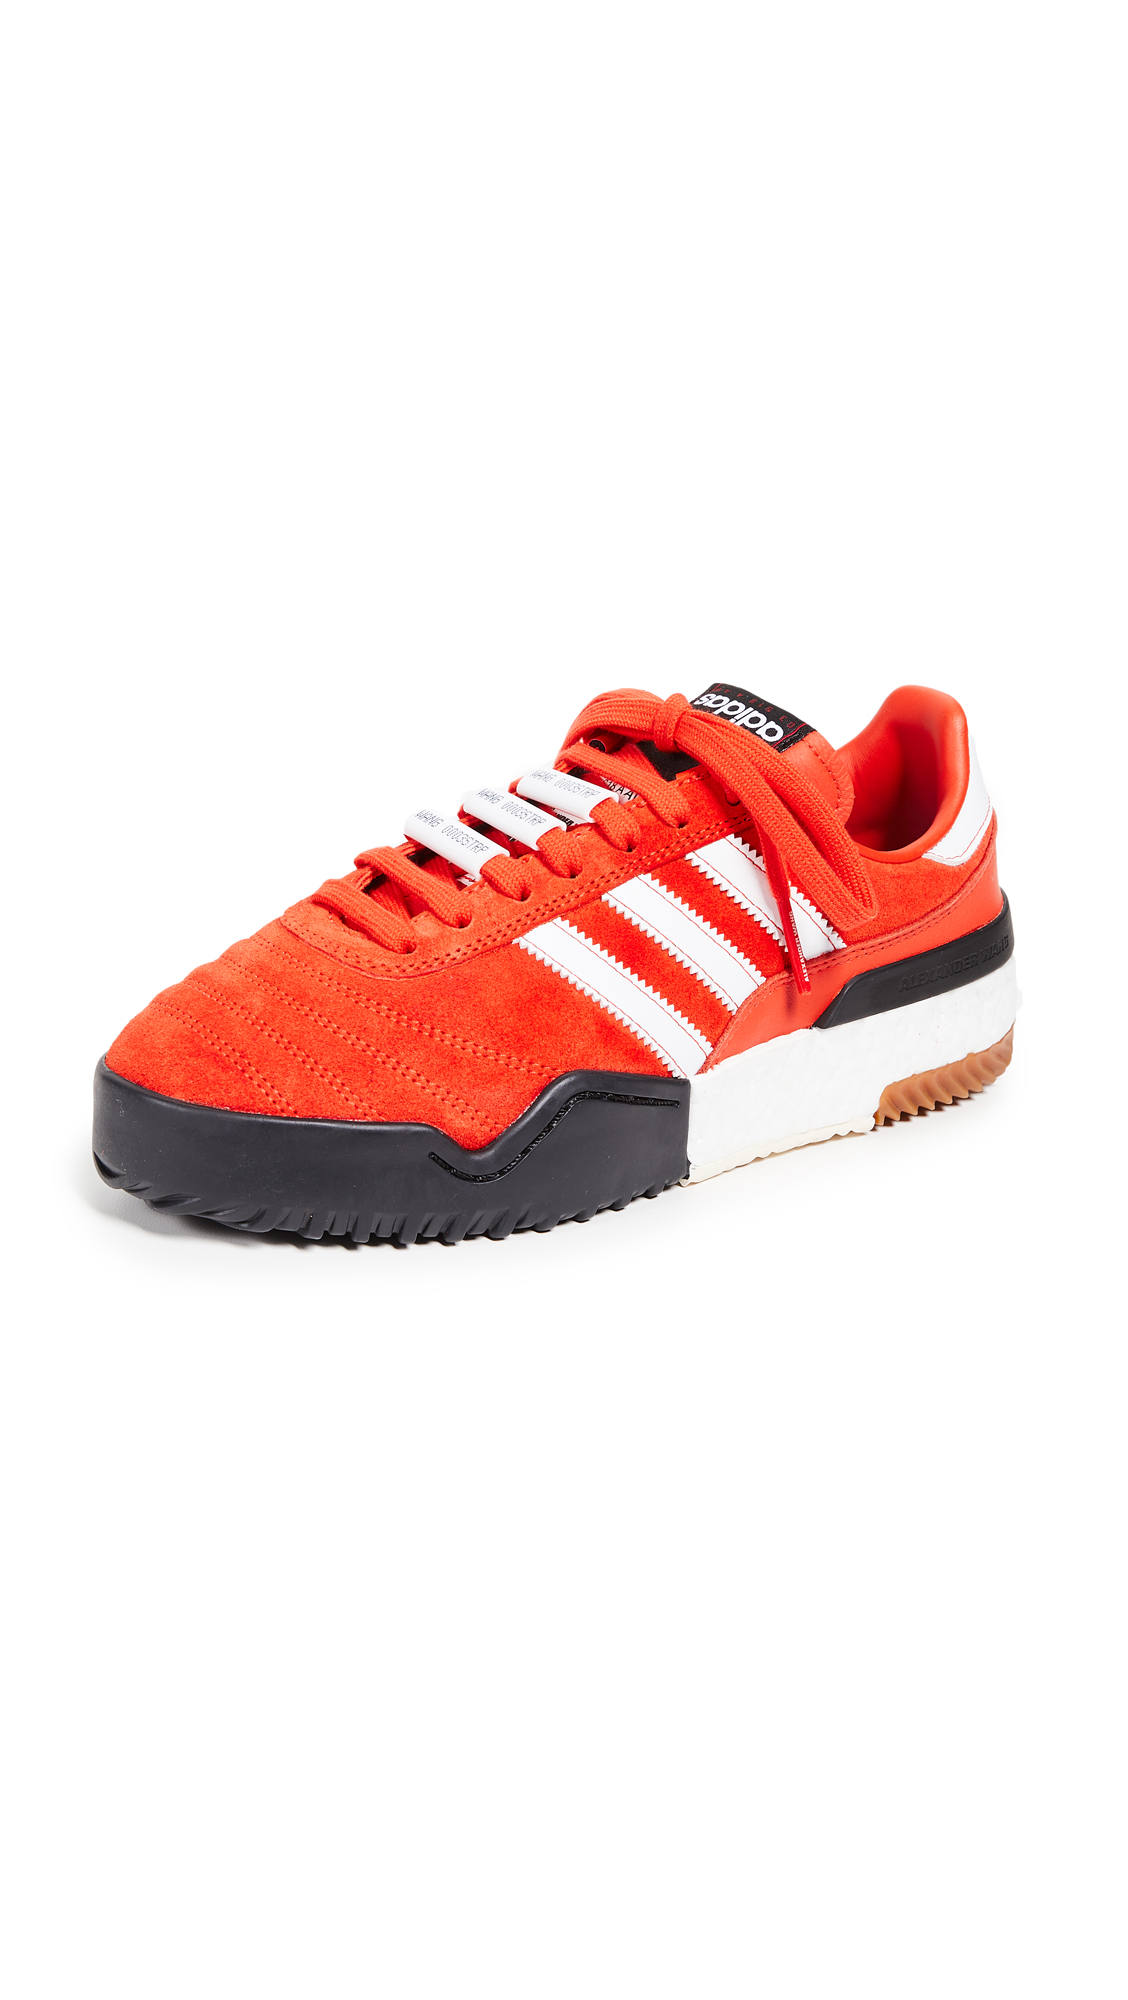 Photo of adidas Originals by Alexander Wang Sports Sneakers online shoes sales